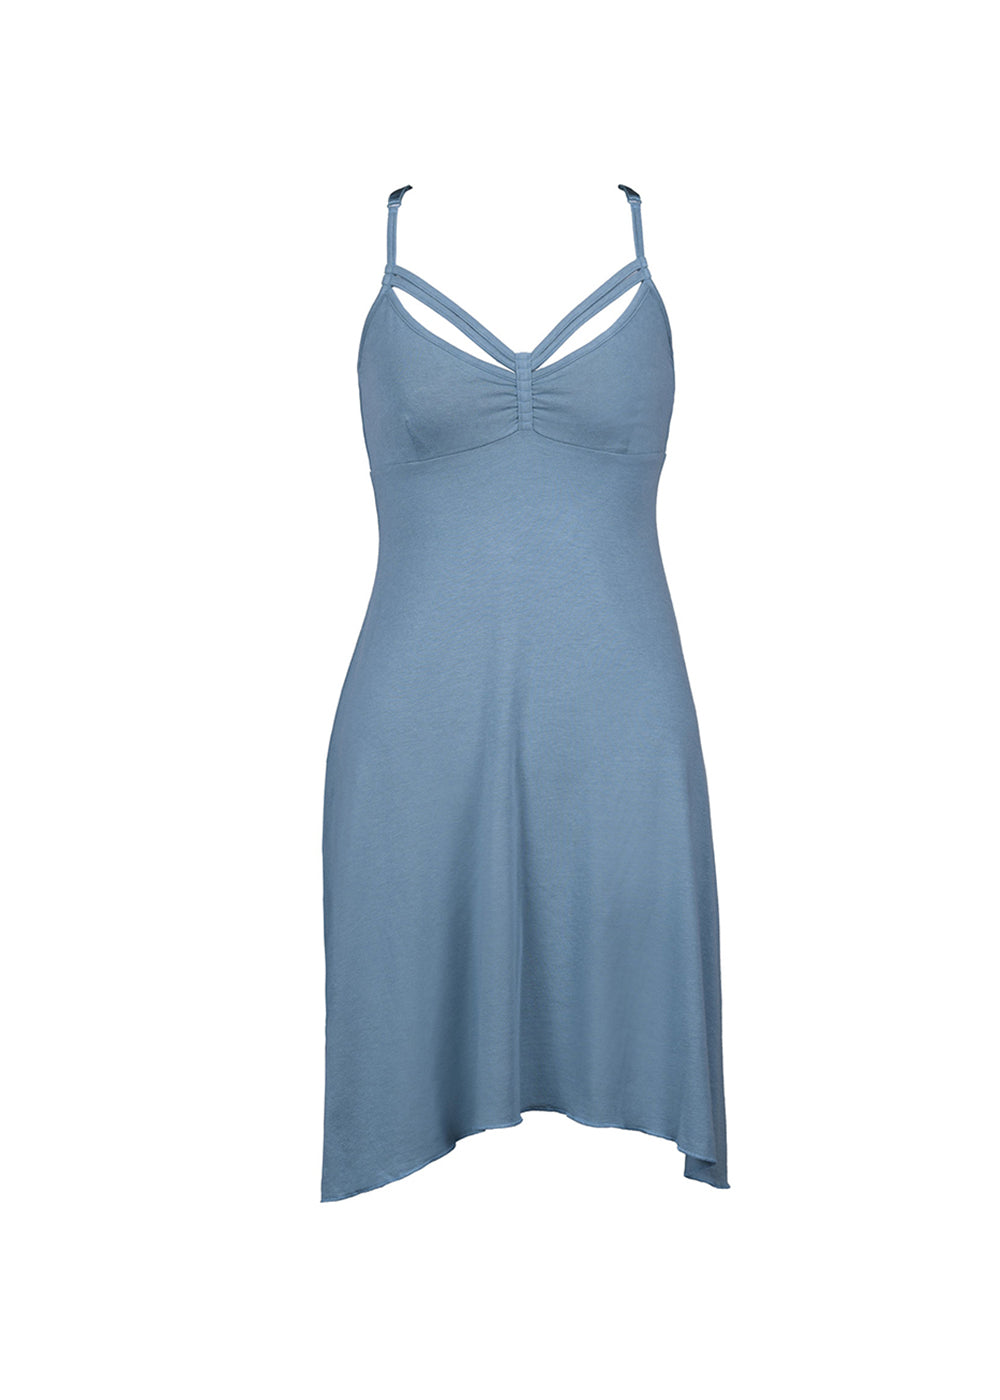 Bamboo and organic cotton blue dress with strappy detail